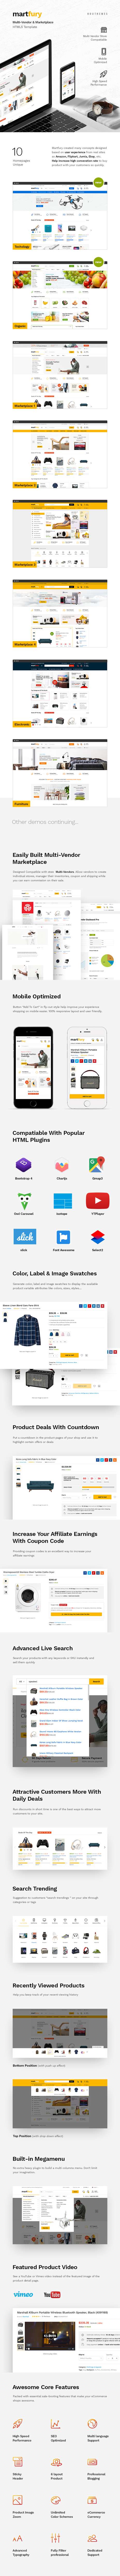 Martfury - Multipurpose Marketplace HTML5 Template with Dashboard